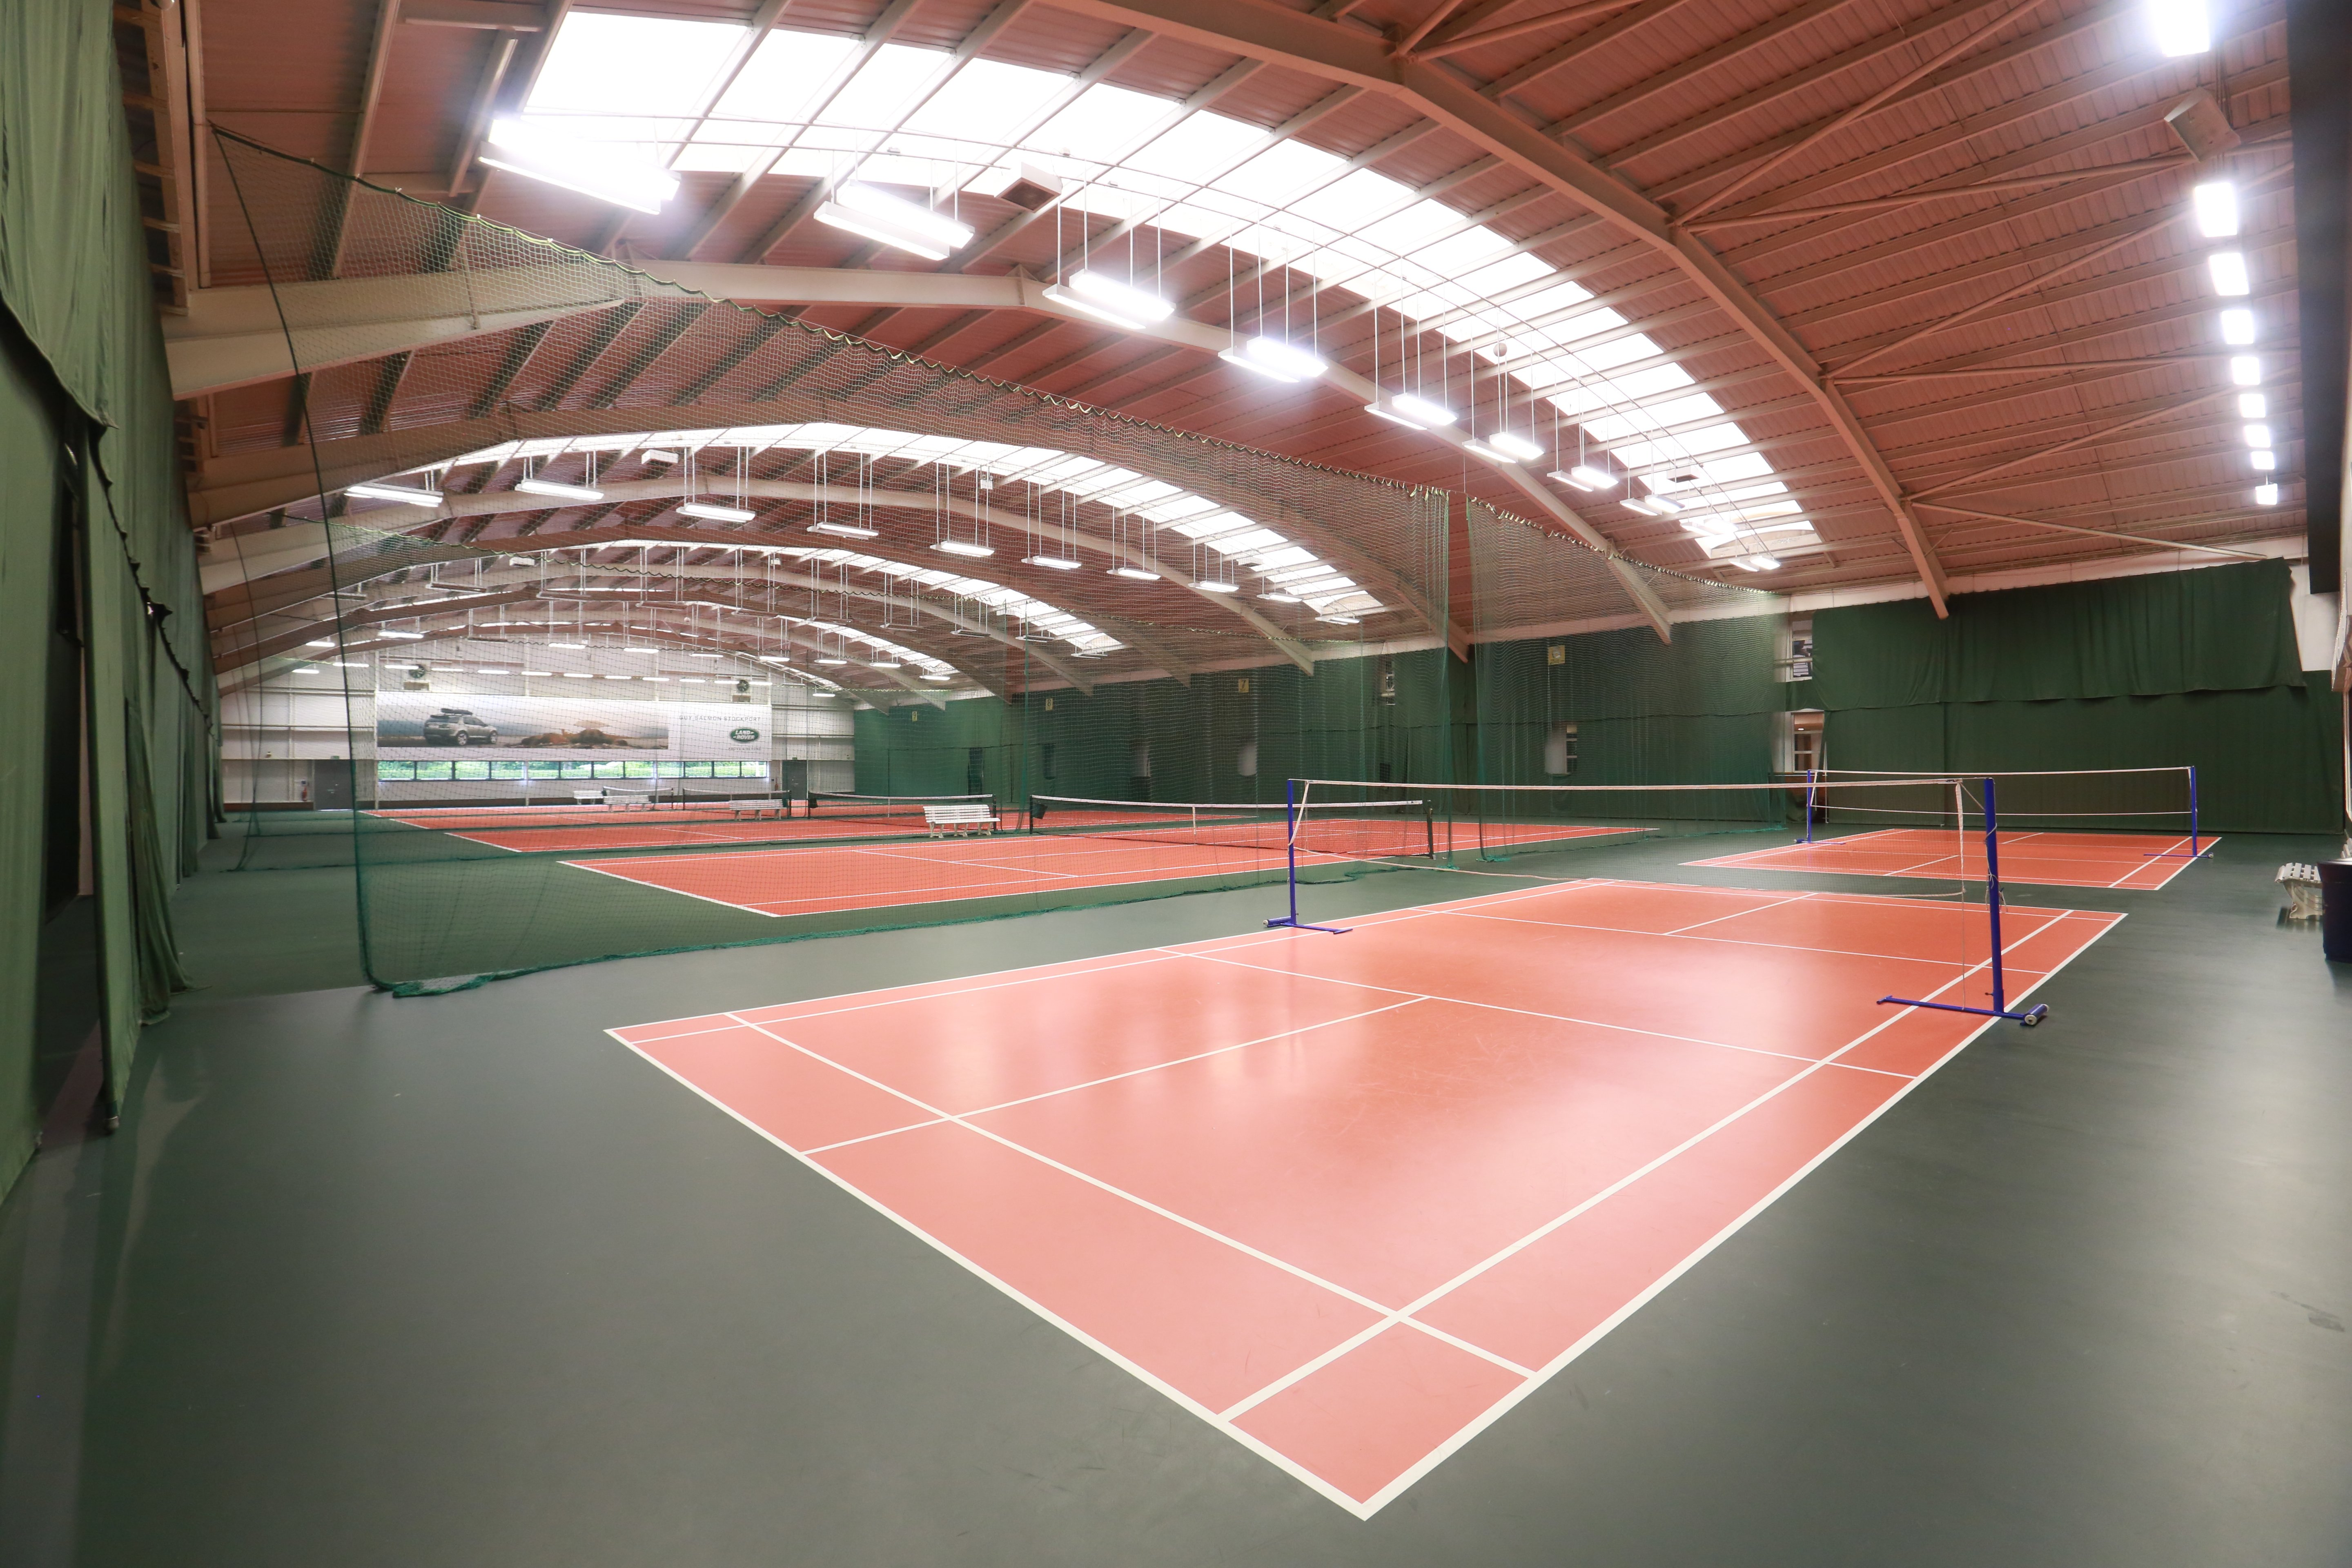 The badminton courts